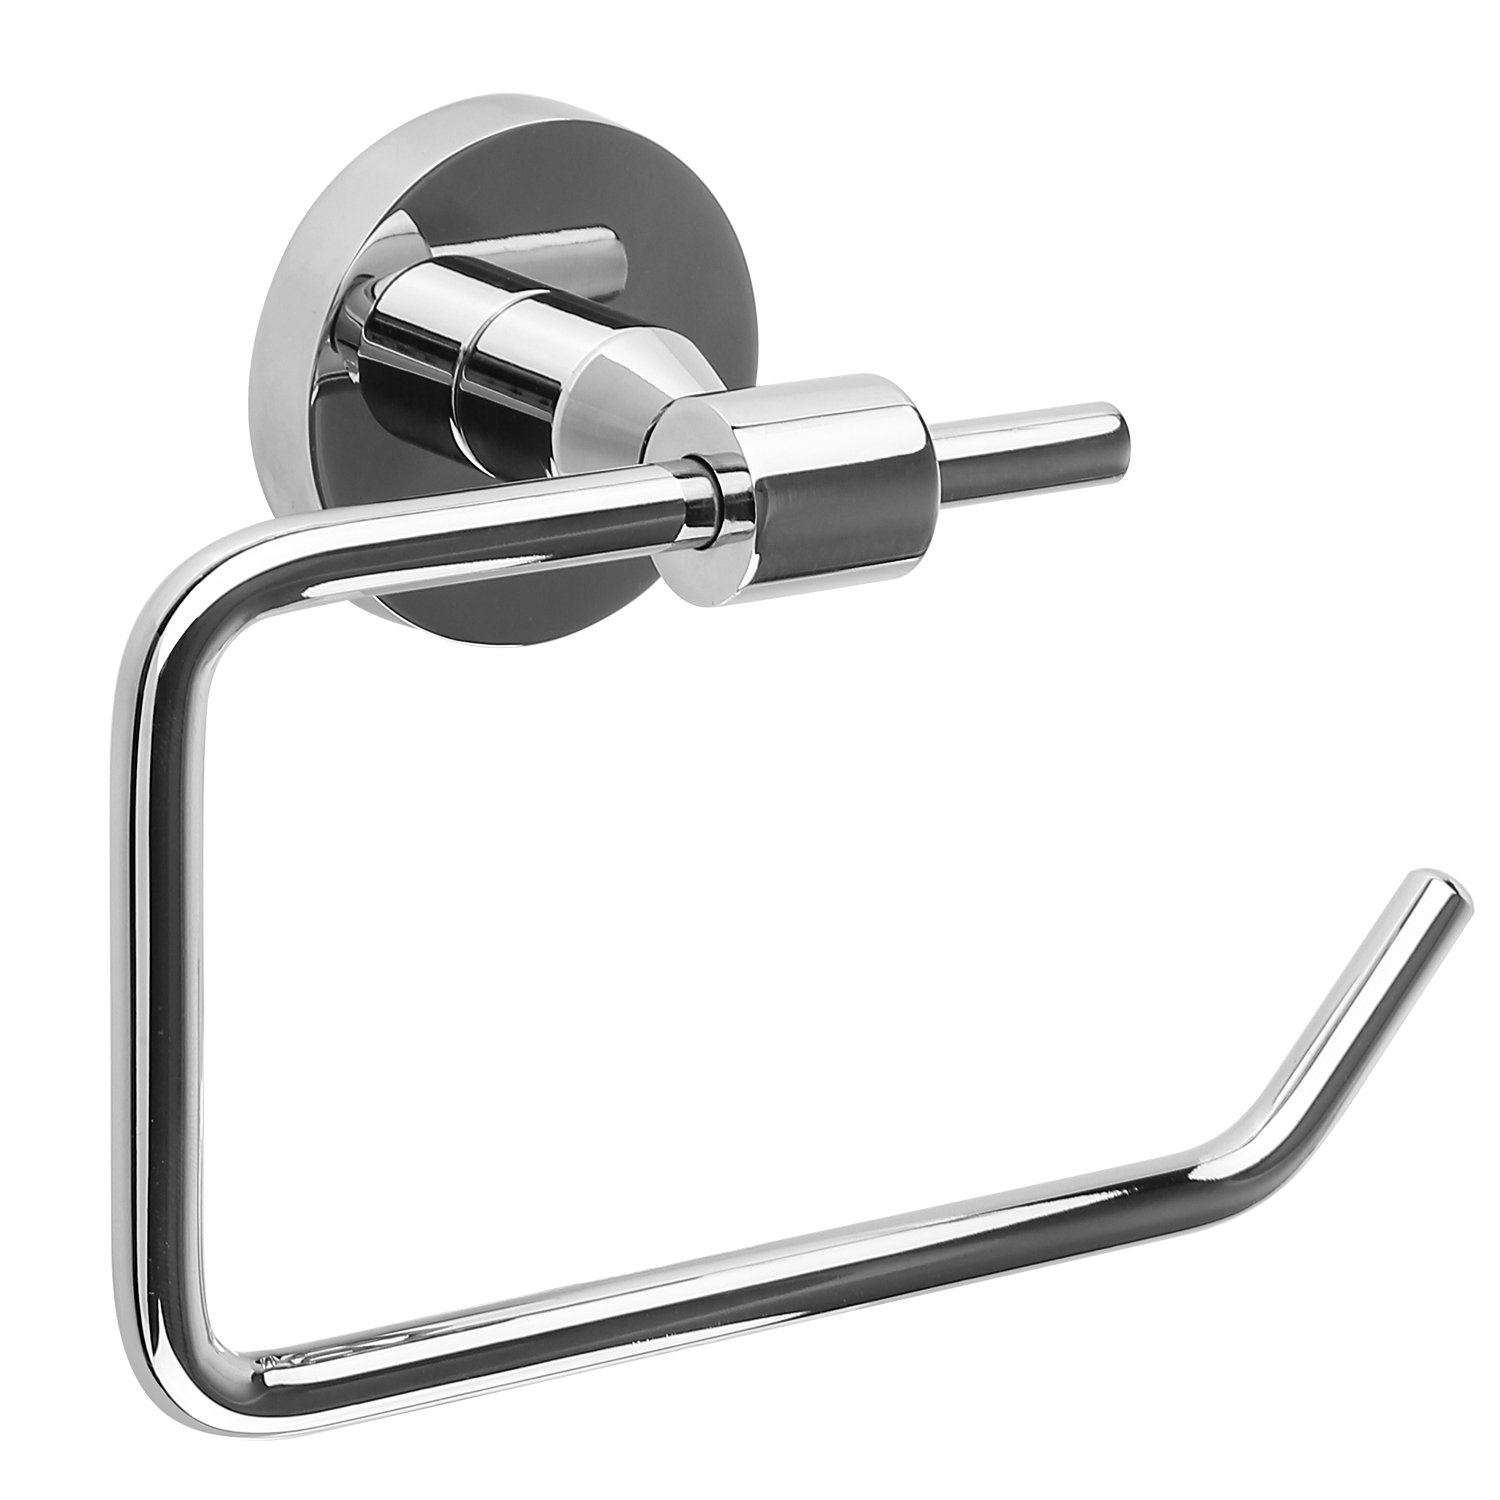 HOMFA Toilet Paper Holder Bathroom Tissue Roll Hanger Stainless Steel, Polished Finish HF